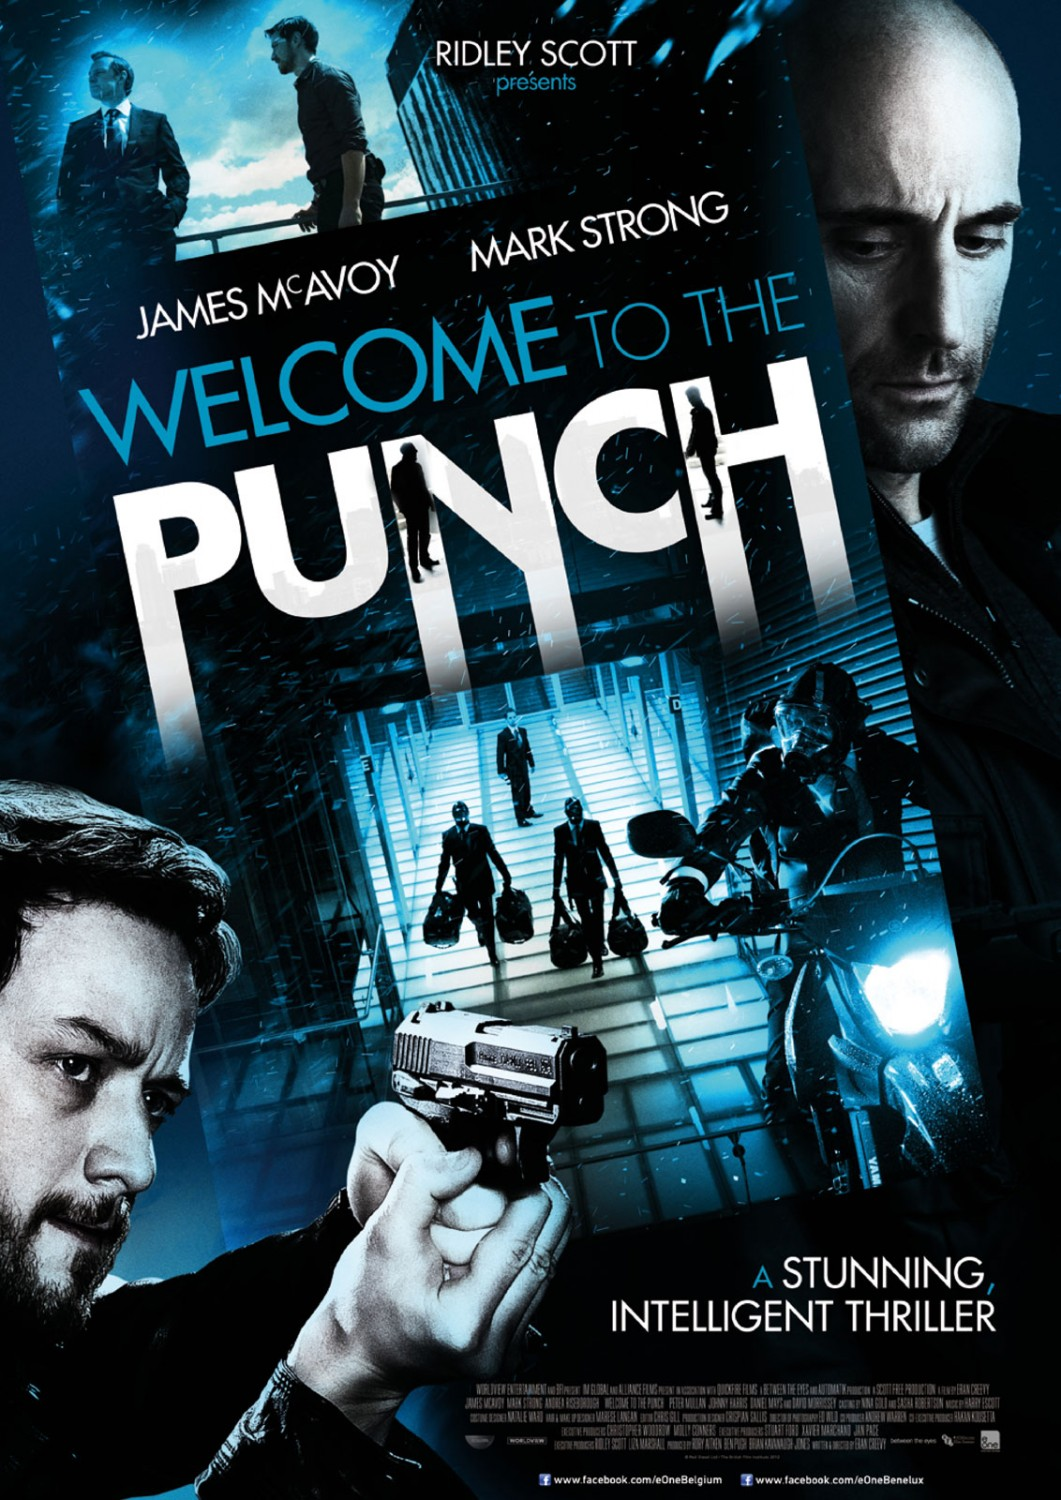 Welcome-to-the-Punch-poster-2